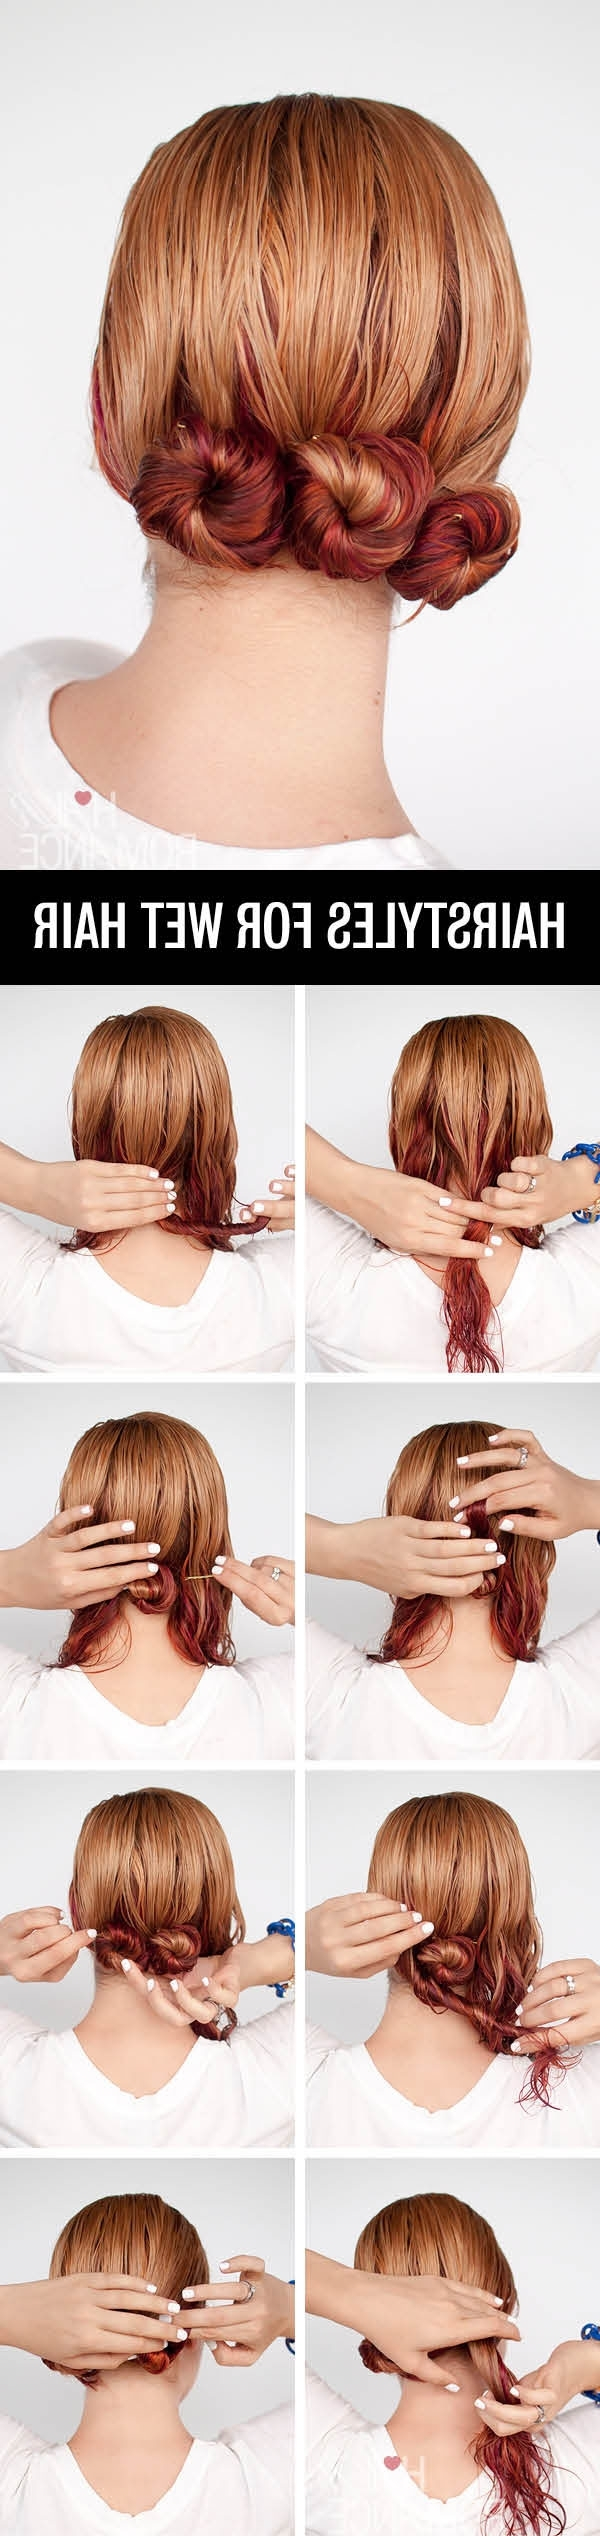 Get Ready Fast With 7 Easy Hairstyle Tutorials For Wet Hair – Hair Throughout Well Known Romantic Twisted Hairdo Hairstyles (View 11 of 20)